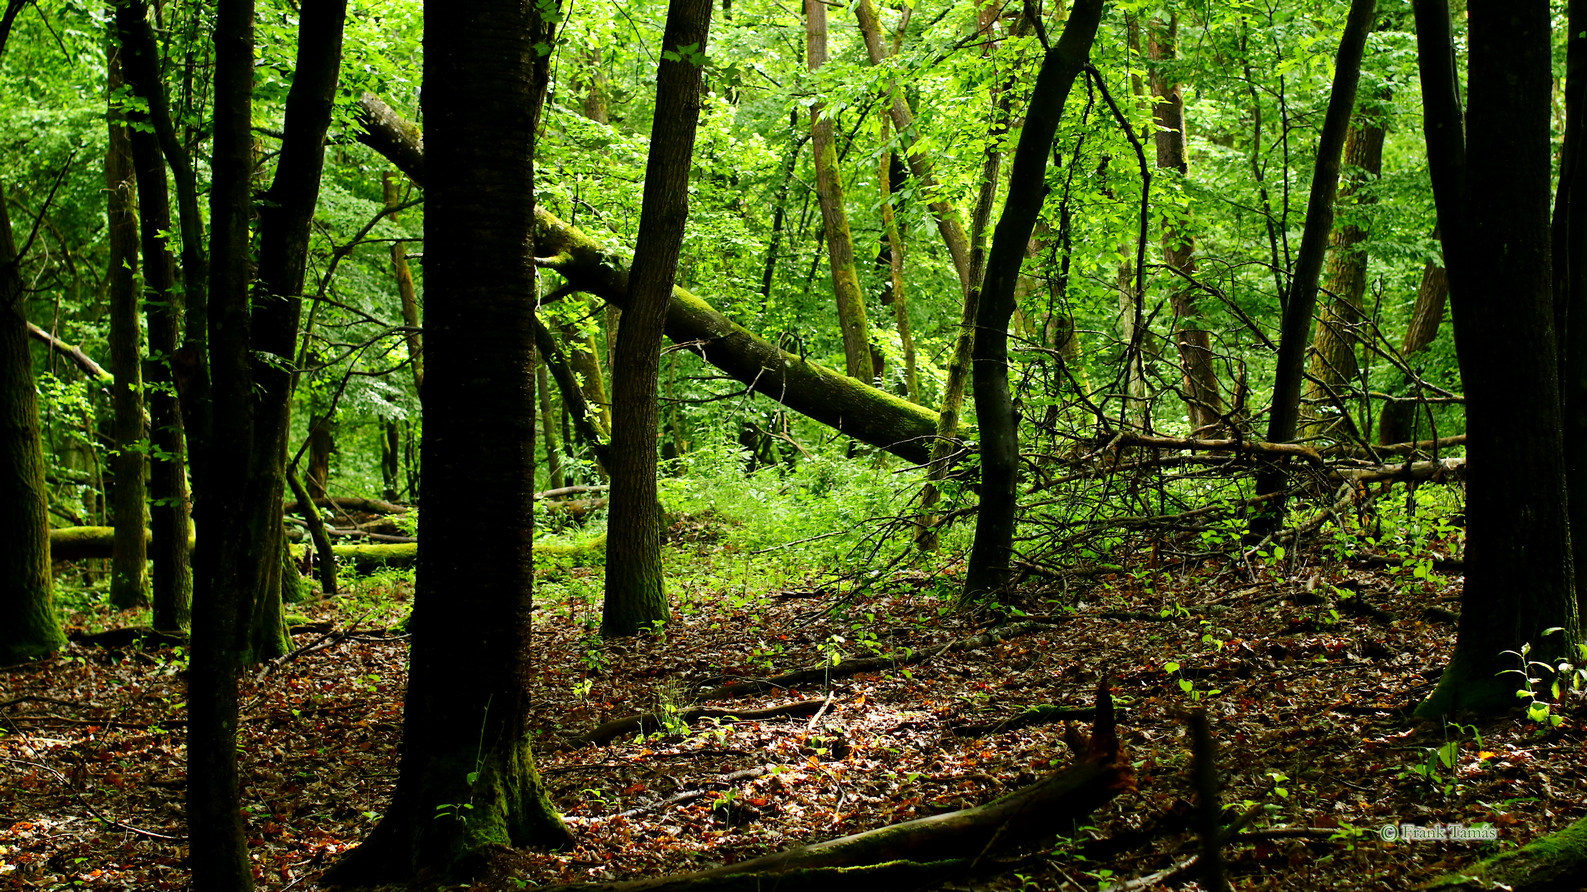 Visit in the natural oak forest of Kavicshát in Aggtelek